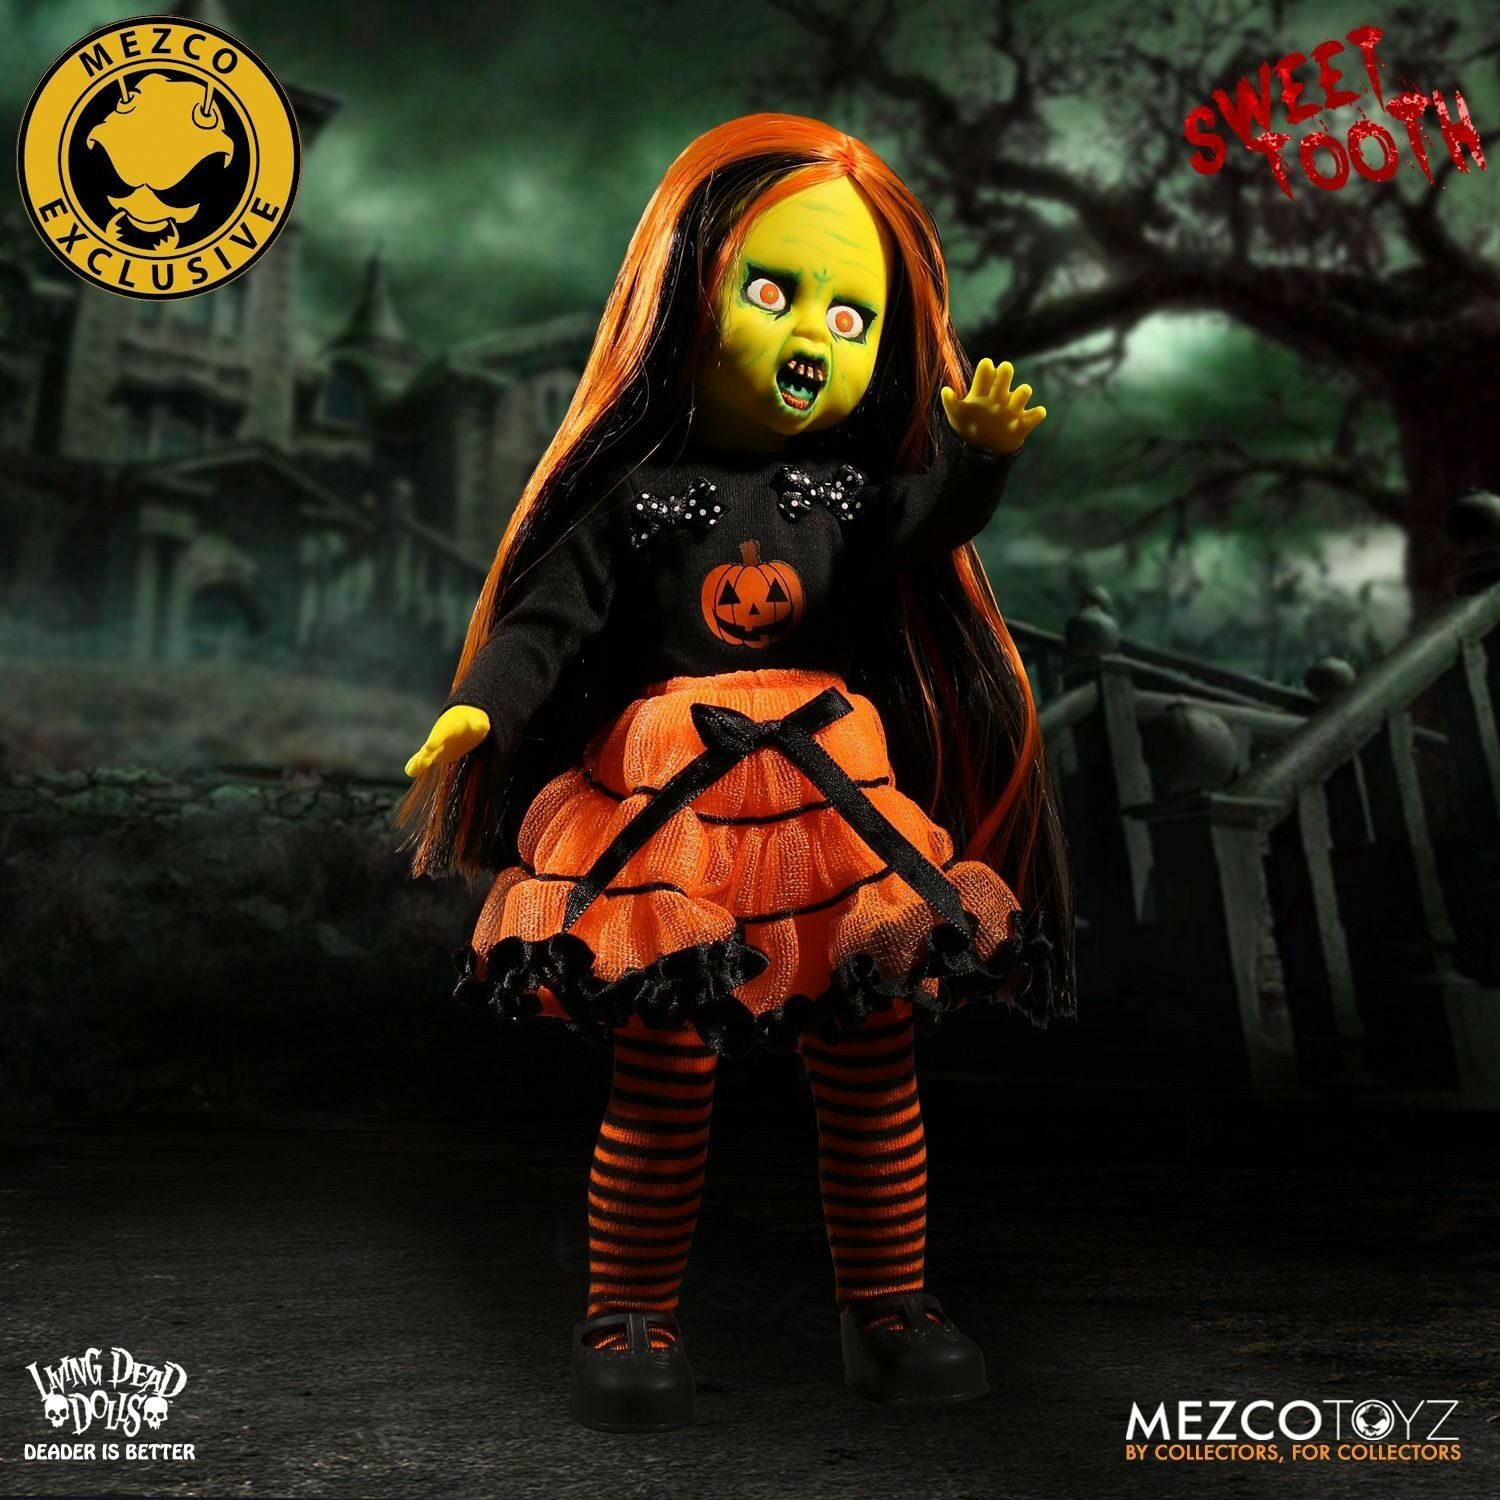 Living Dead Dolls Sweet Tooth Exclusive 10-Inch Doll